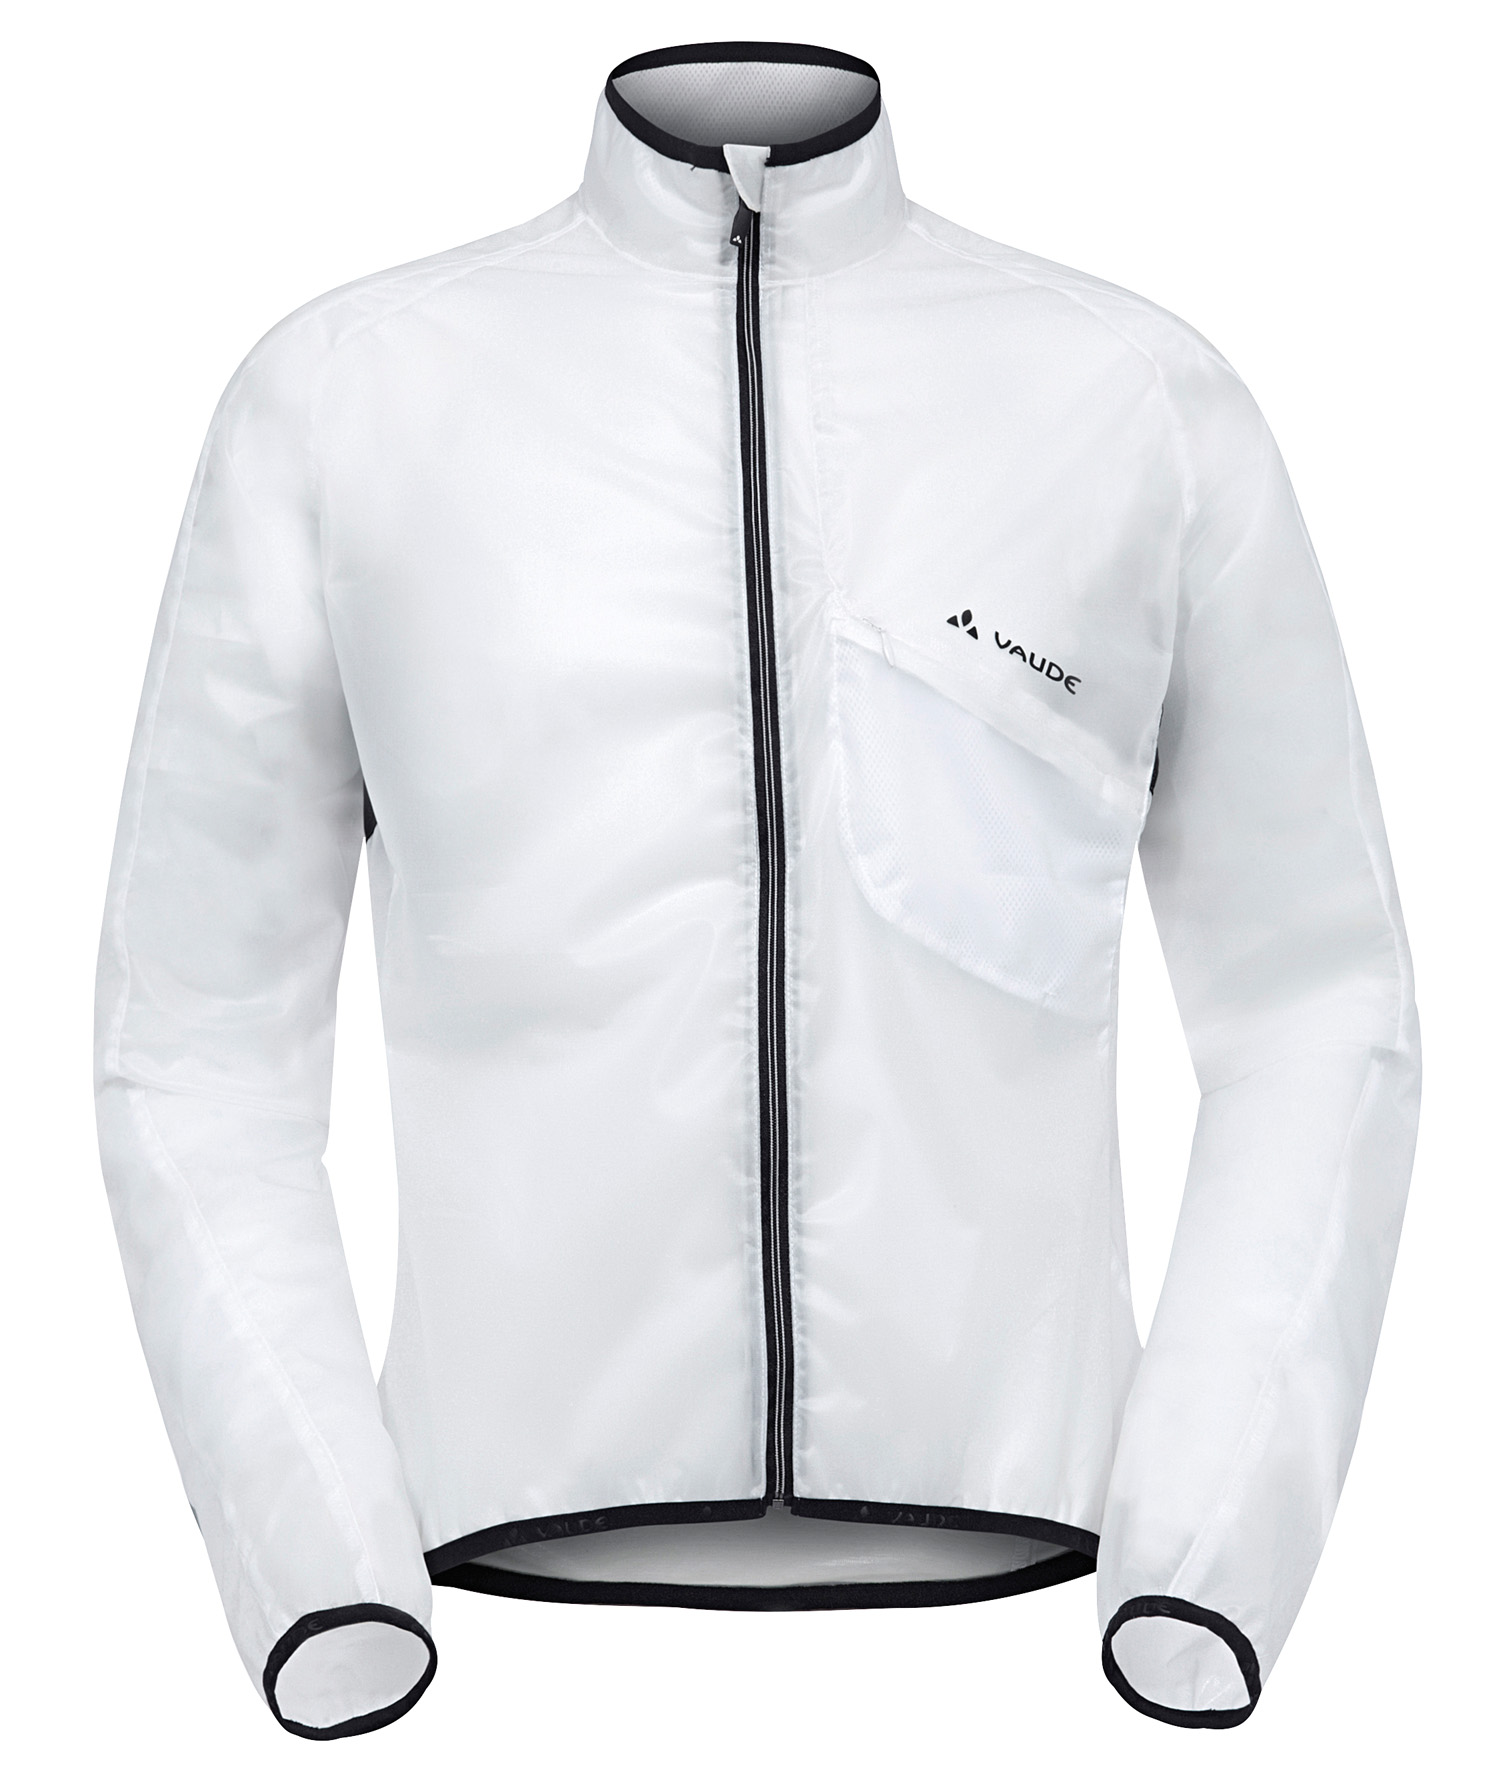 Men´s Unique Jacket III white Größe L - schneider-sports